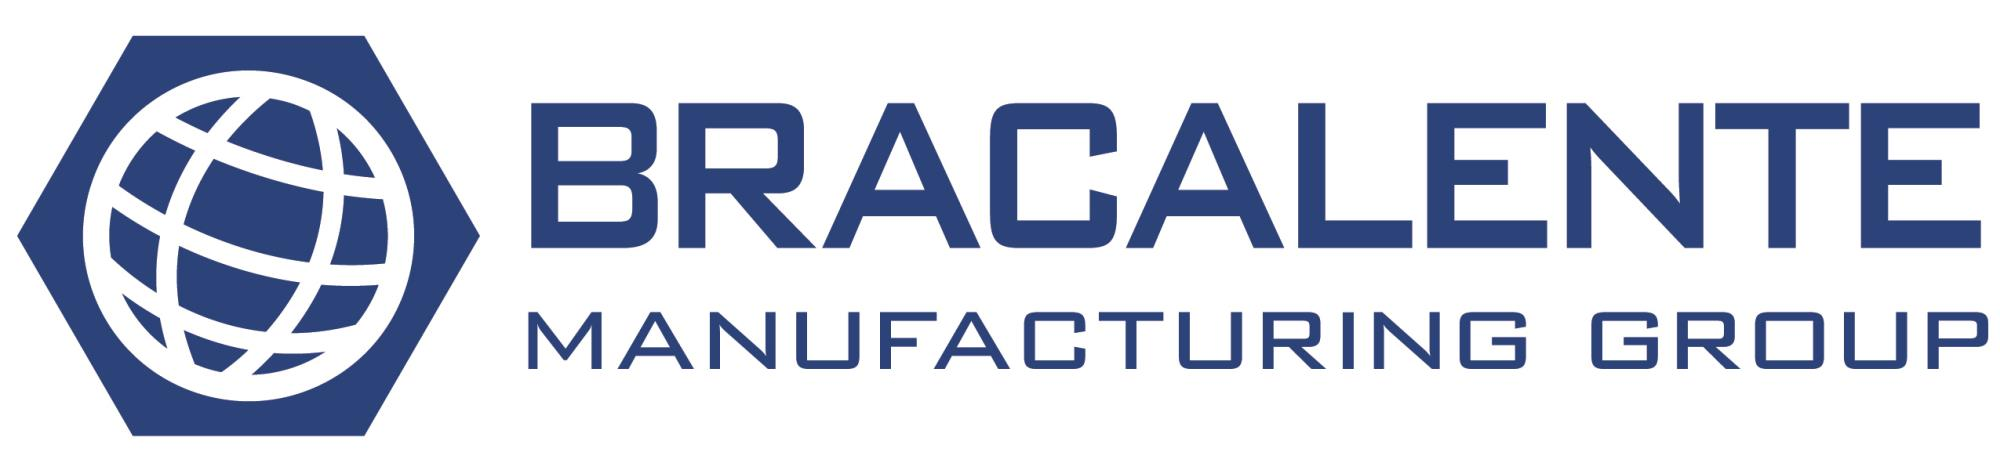 Bracalente Manufacturing Group